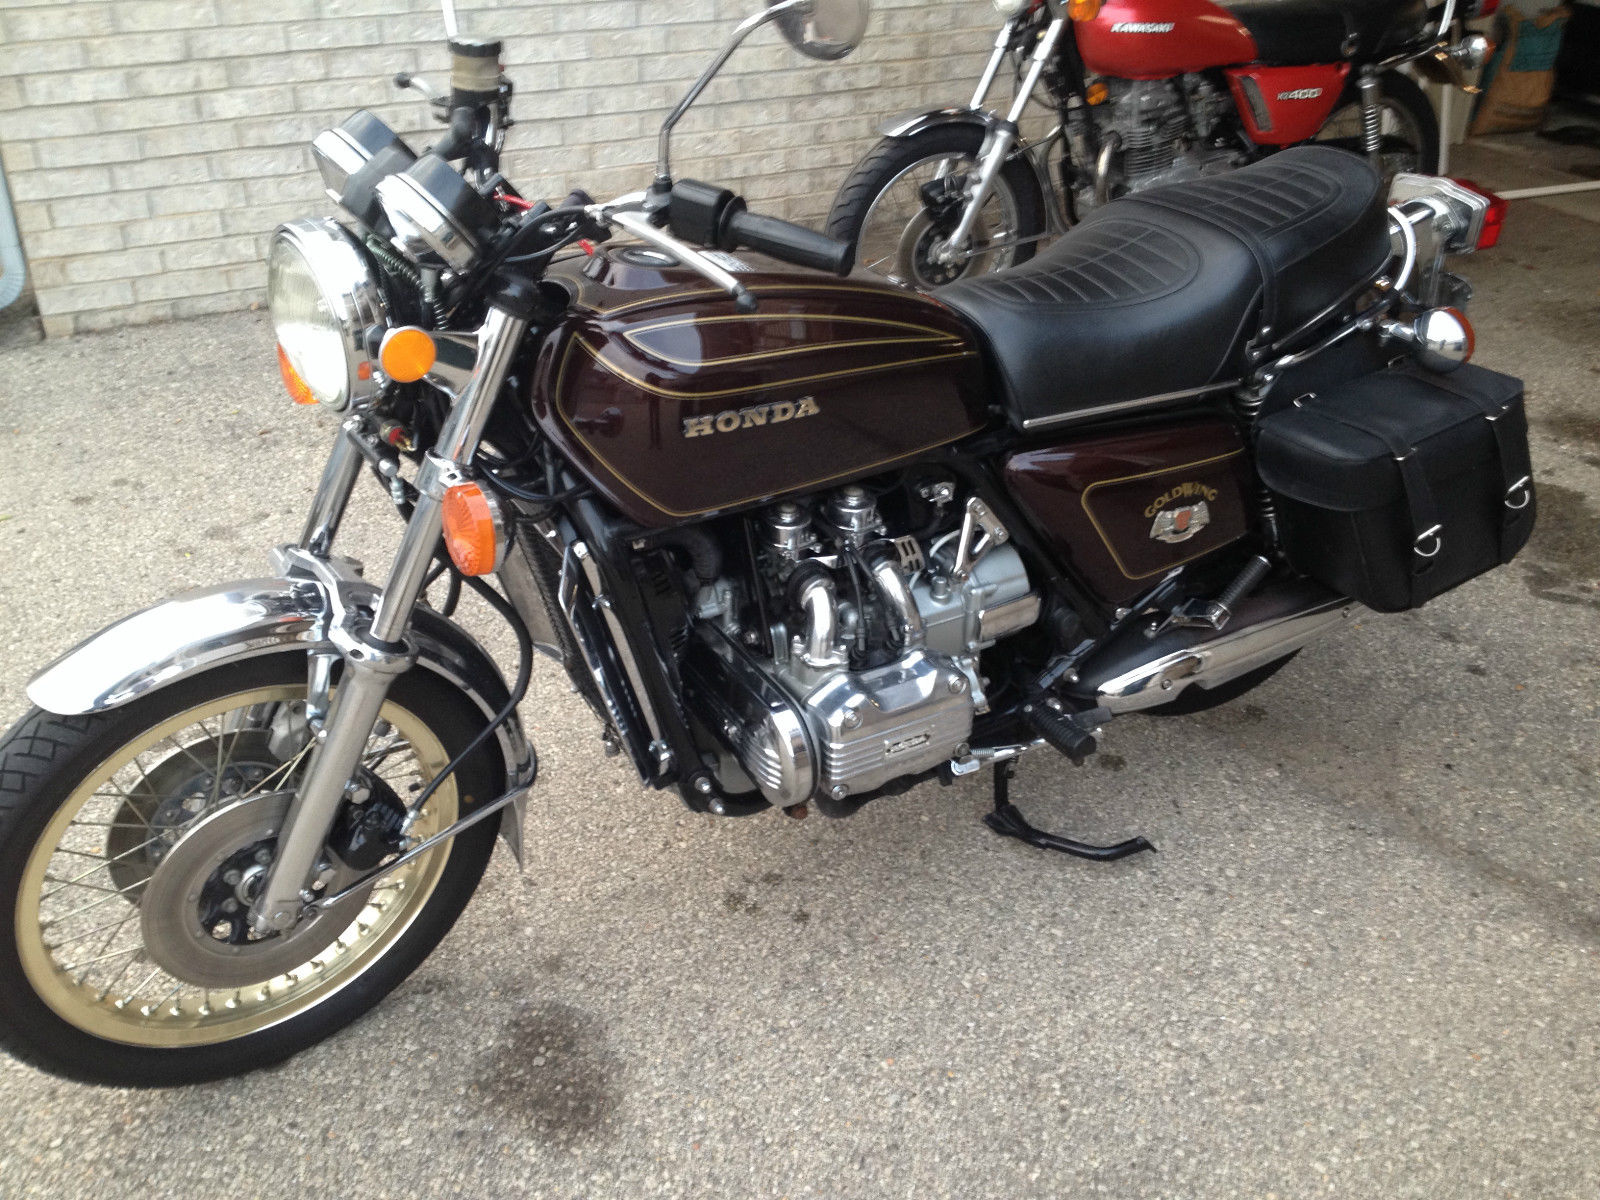 1979 Honda Gl 1000 Gold Wing Pics Specs And Information 1976 Cc Goldwing Wiring Diagram 20211